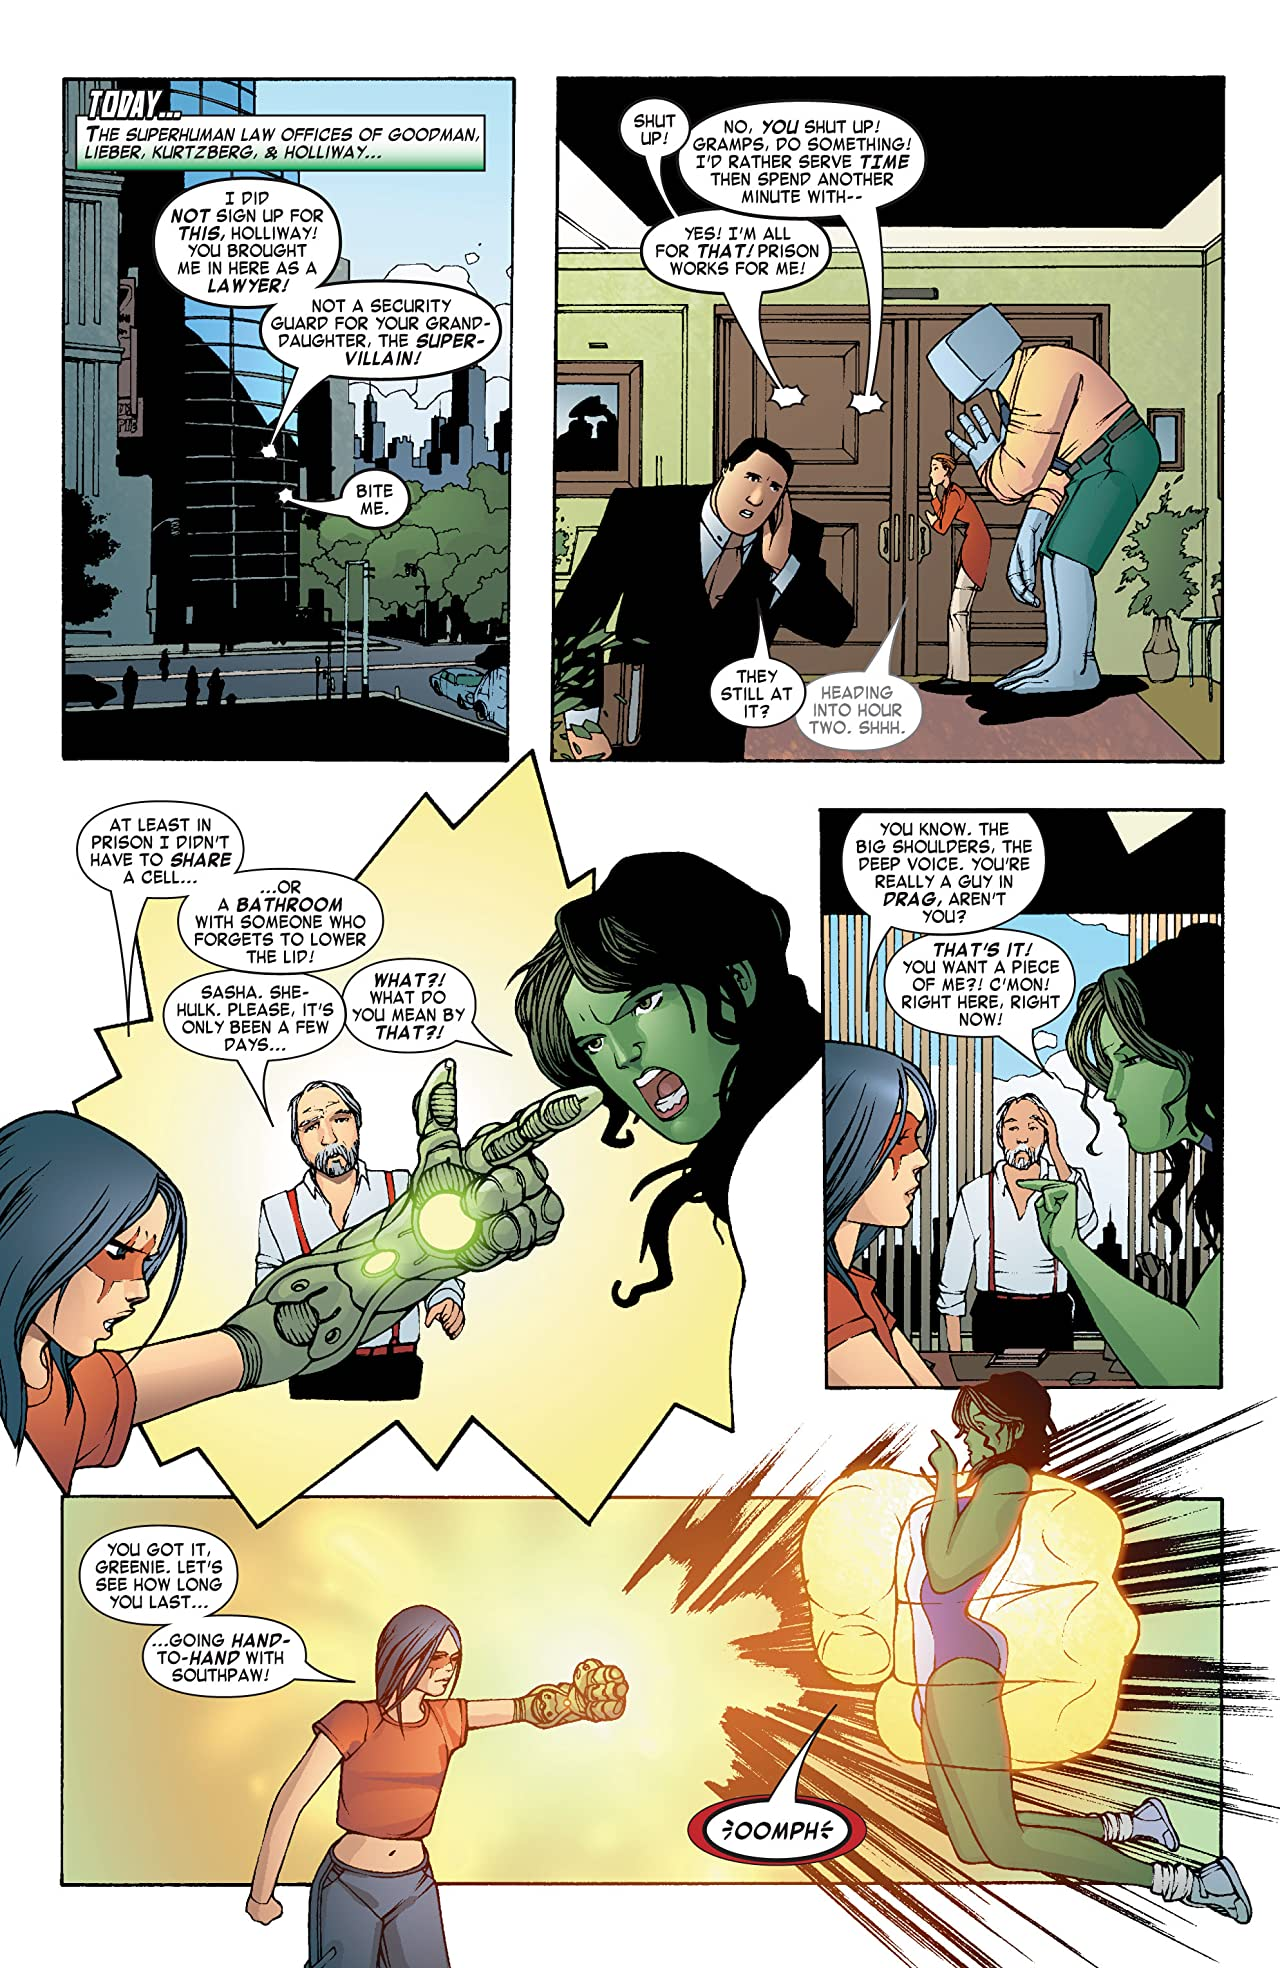 She-Hulk Vol. 2: Superhuman Law